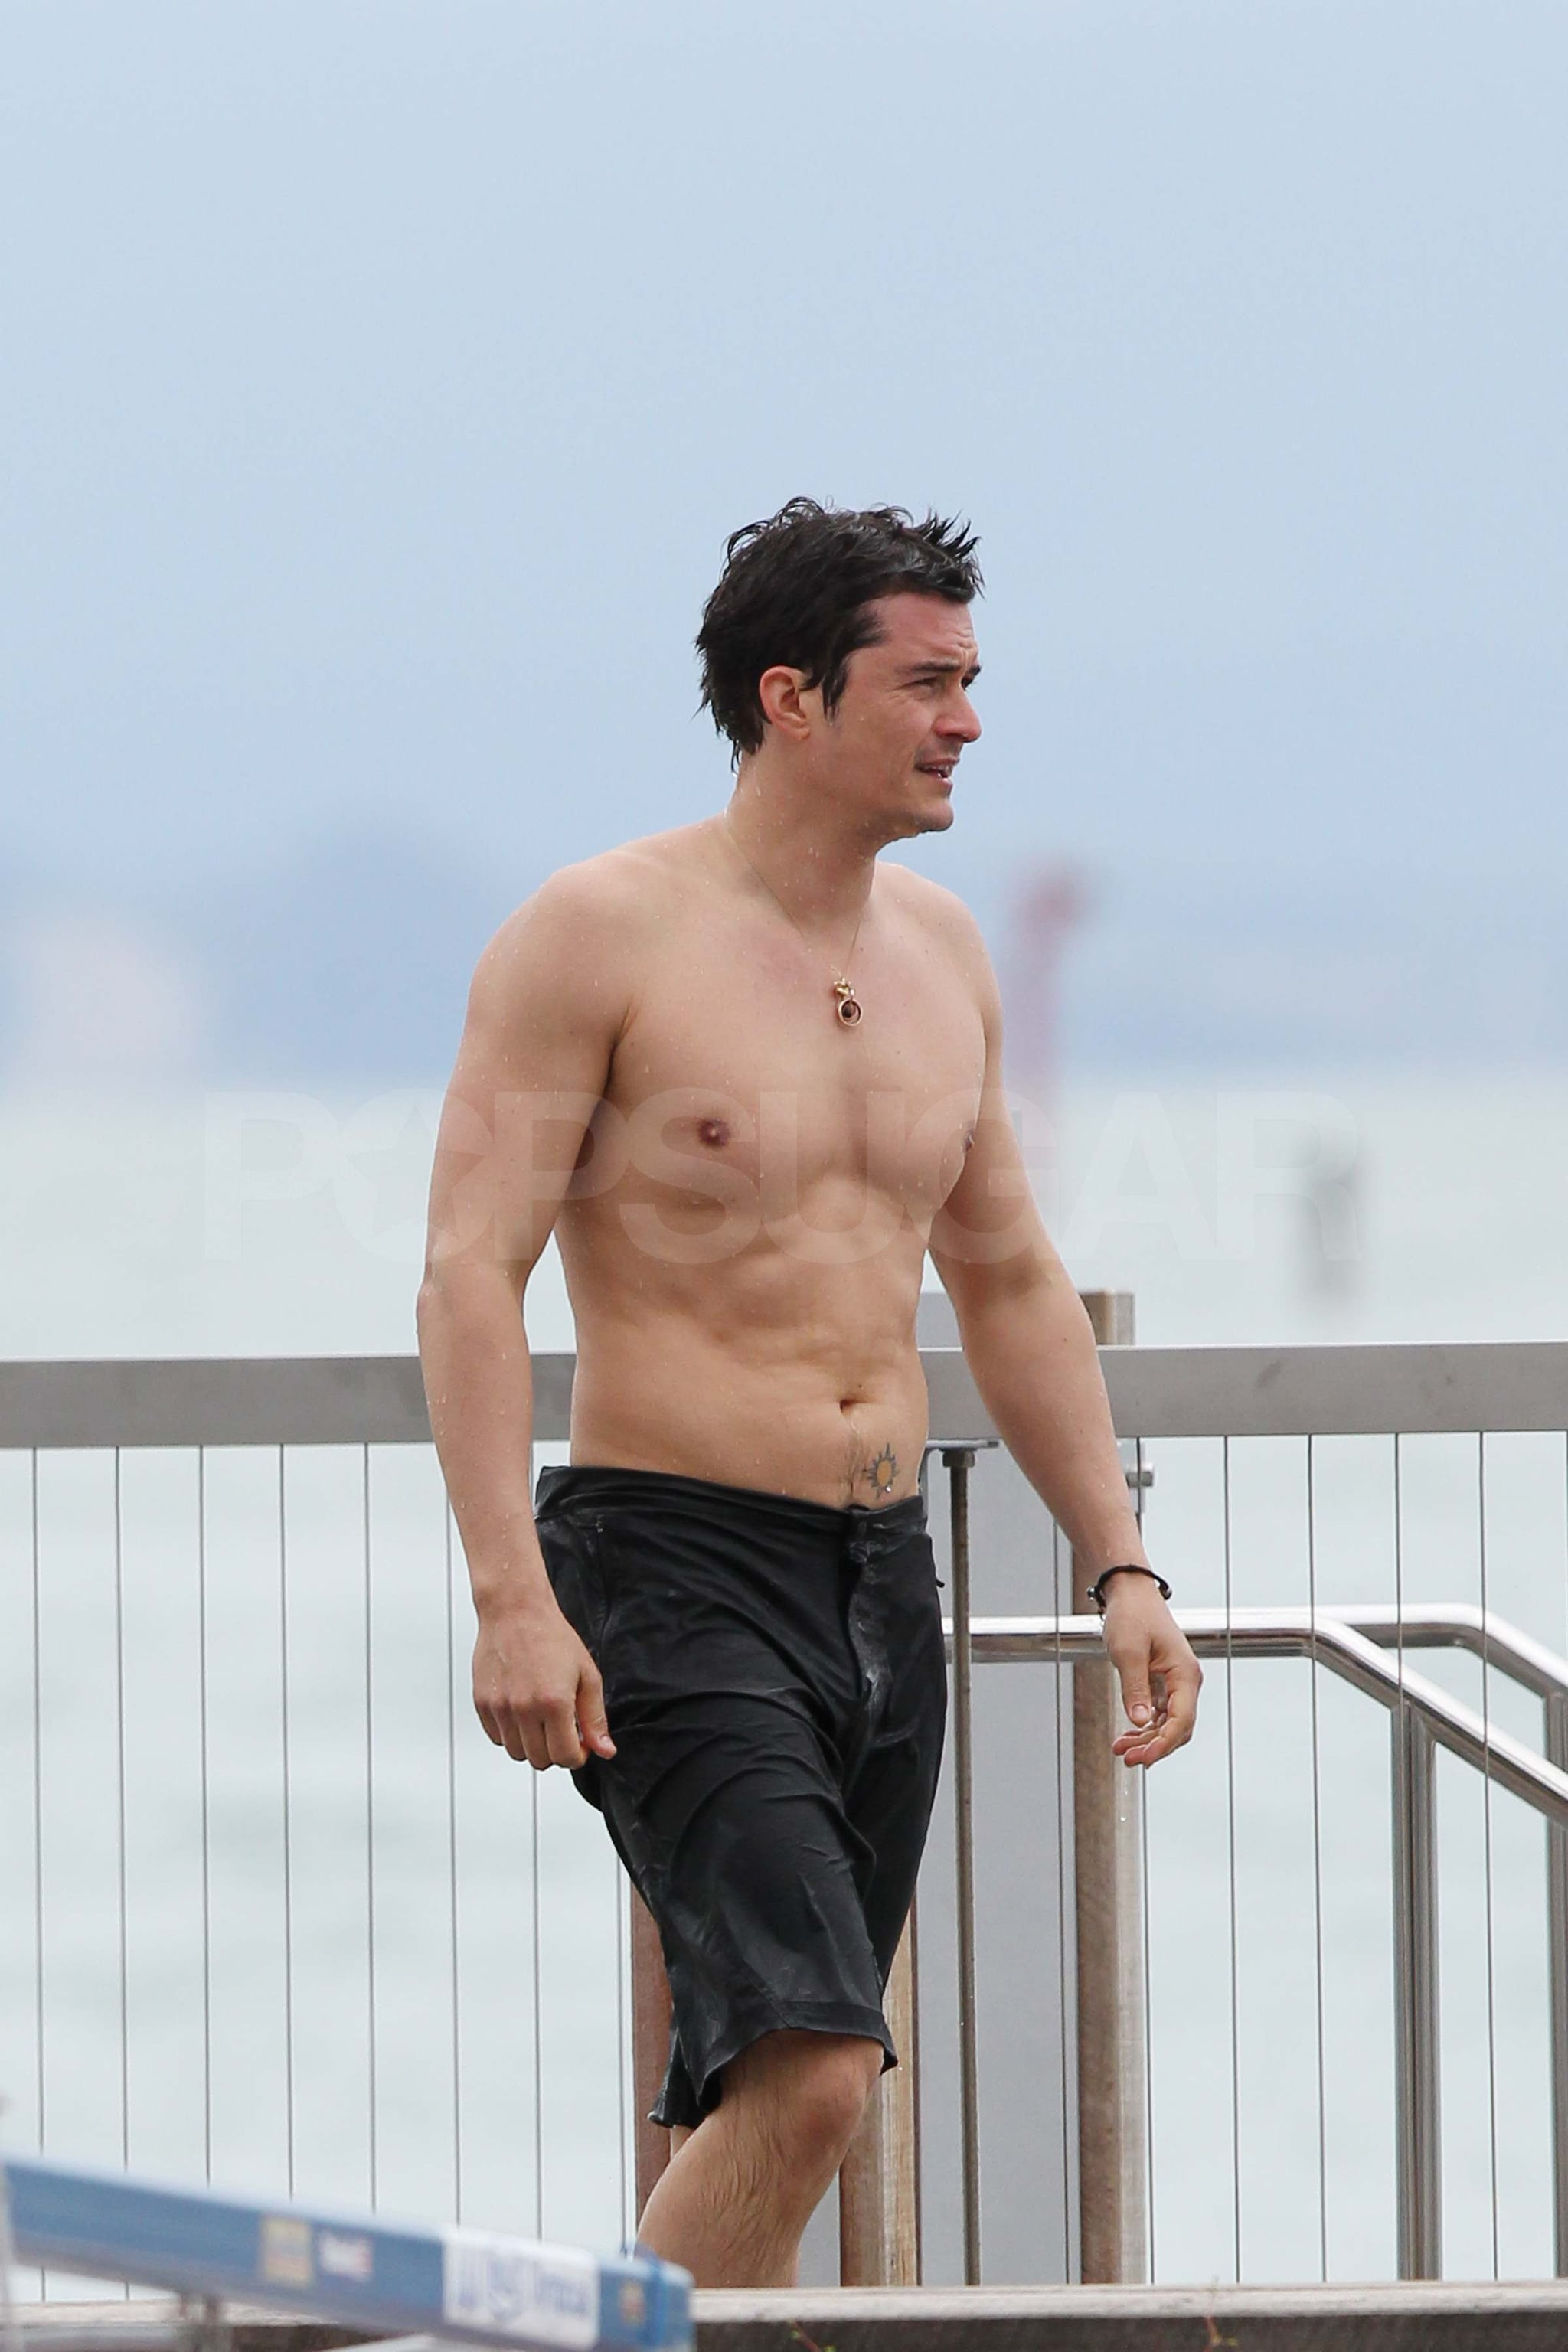 Shirtless Orlando Bloom swimming in New Zealand.